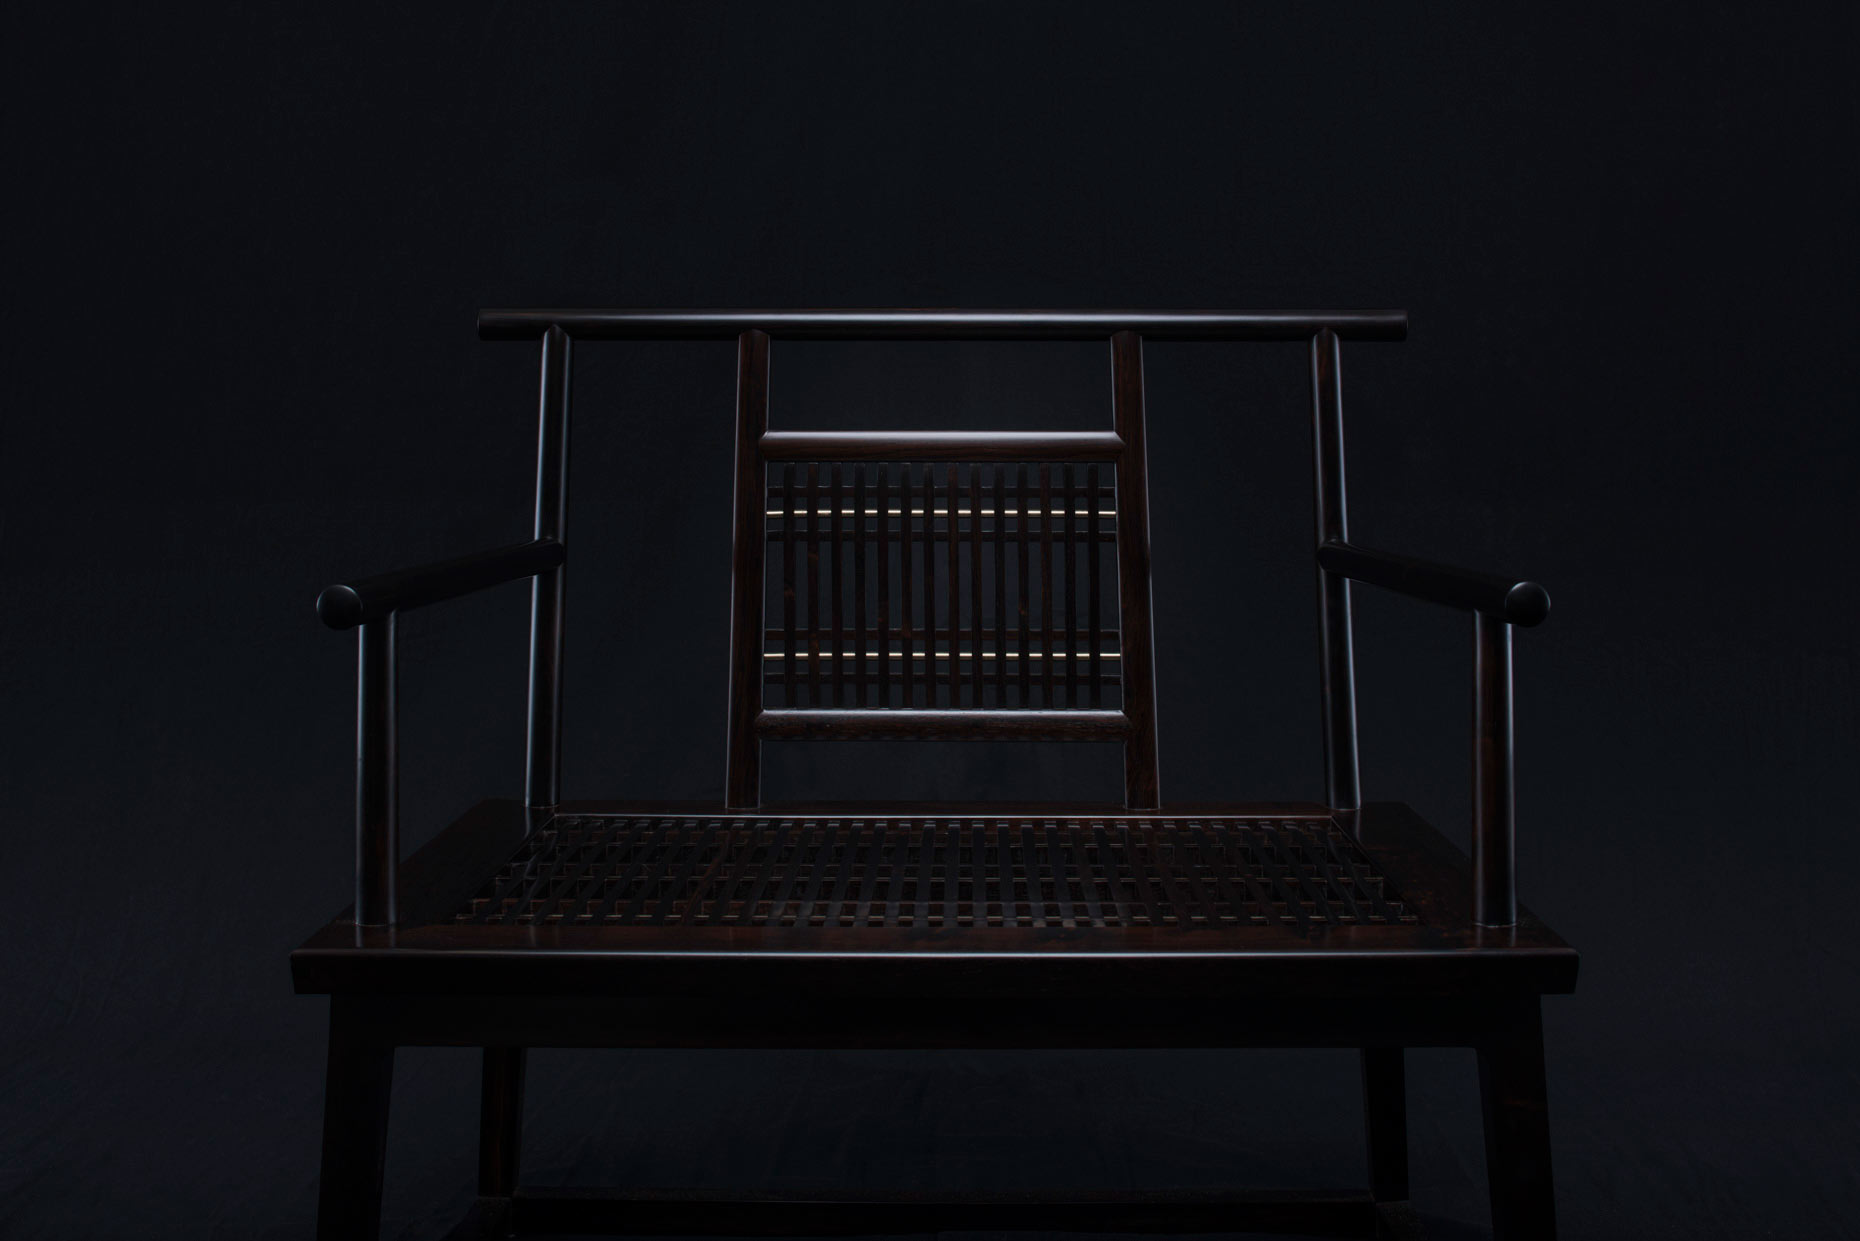 Rong Ding Xuan Furniture Campaign by Photographer Stefen Chow |  Furniture | Bespoke  | Wood | Stefen Chow | Hand Crafted | Product Photography | BeijingRong Ding Xuan |  Furniture | Bespoke  | Wood | Stefen Chow | Hand Crafted | Product Photography | Beijing | China | Asia